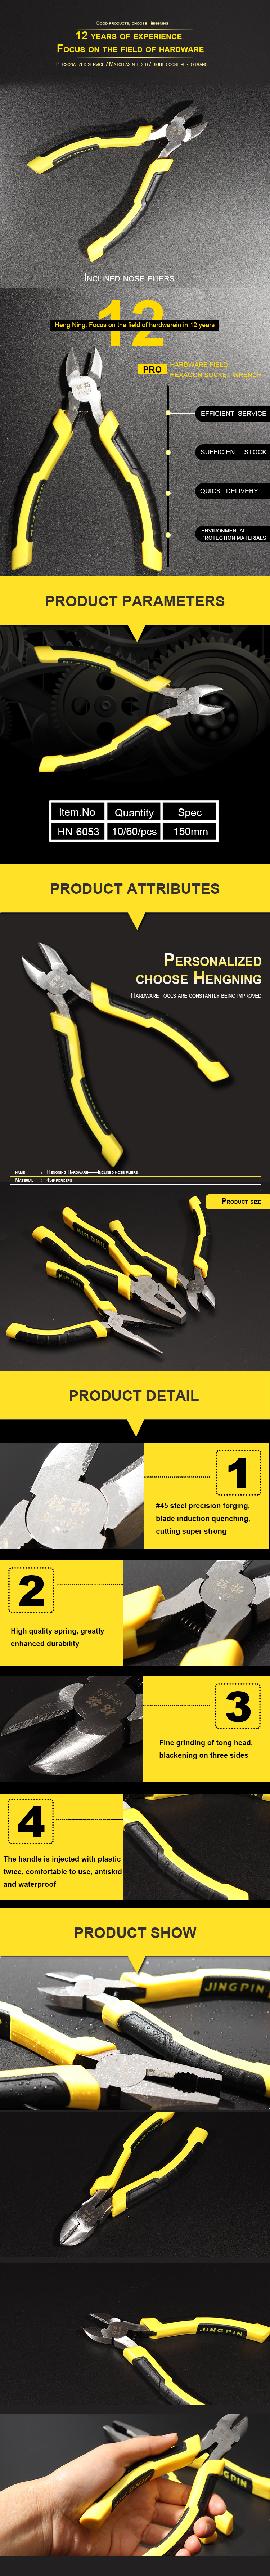 China wholesale Side Cutter 6 Inch Diagonal Cutting Pliers for Linesman